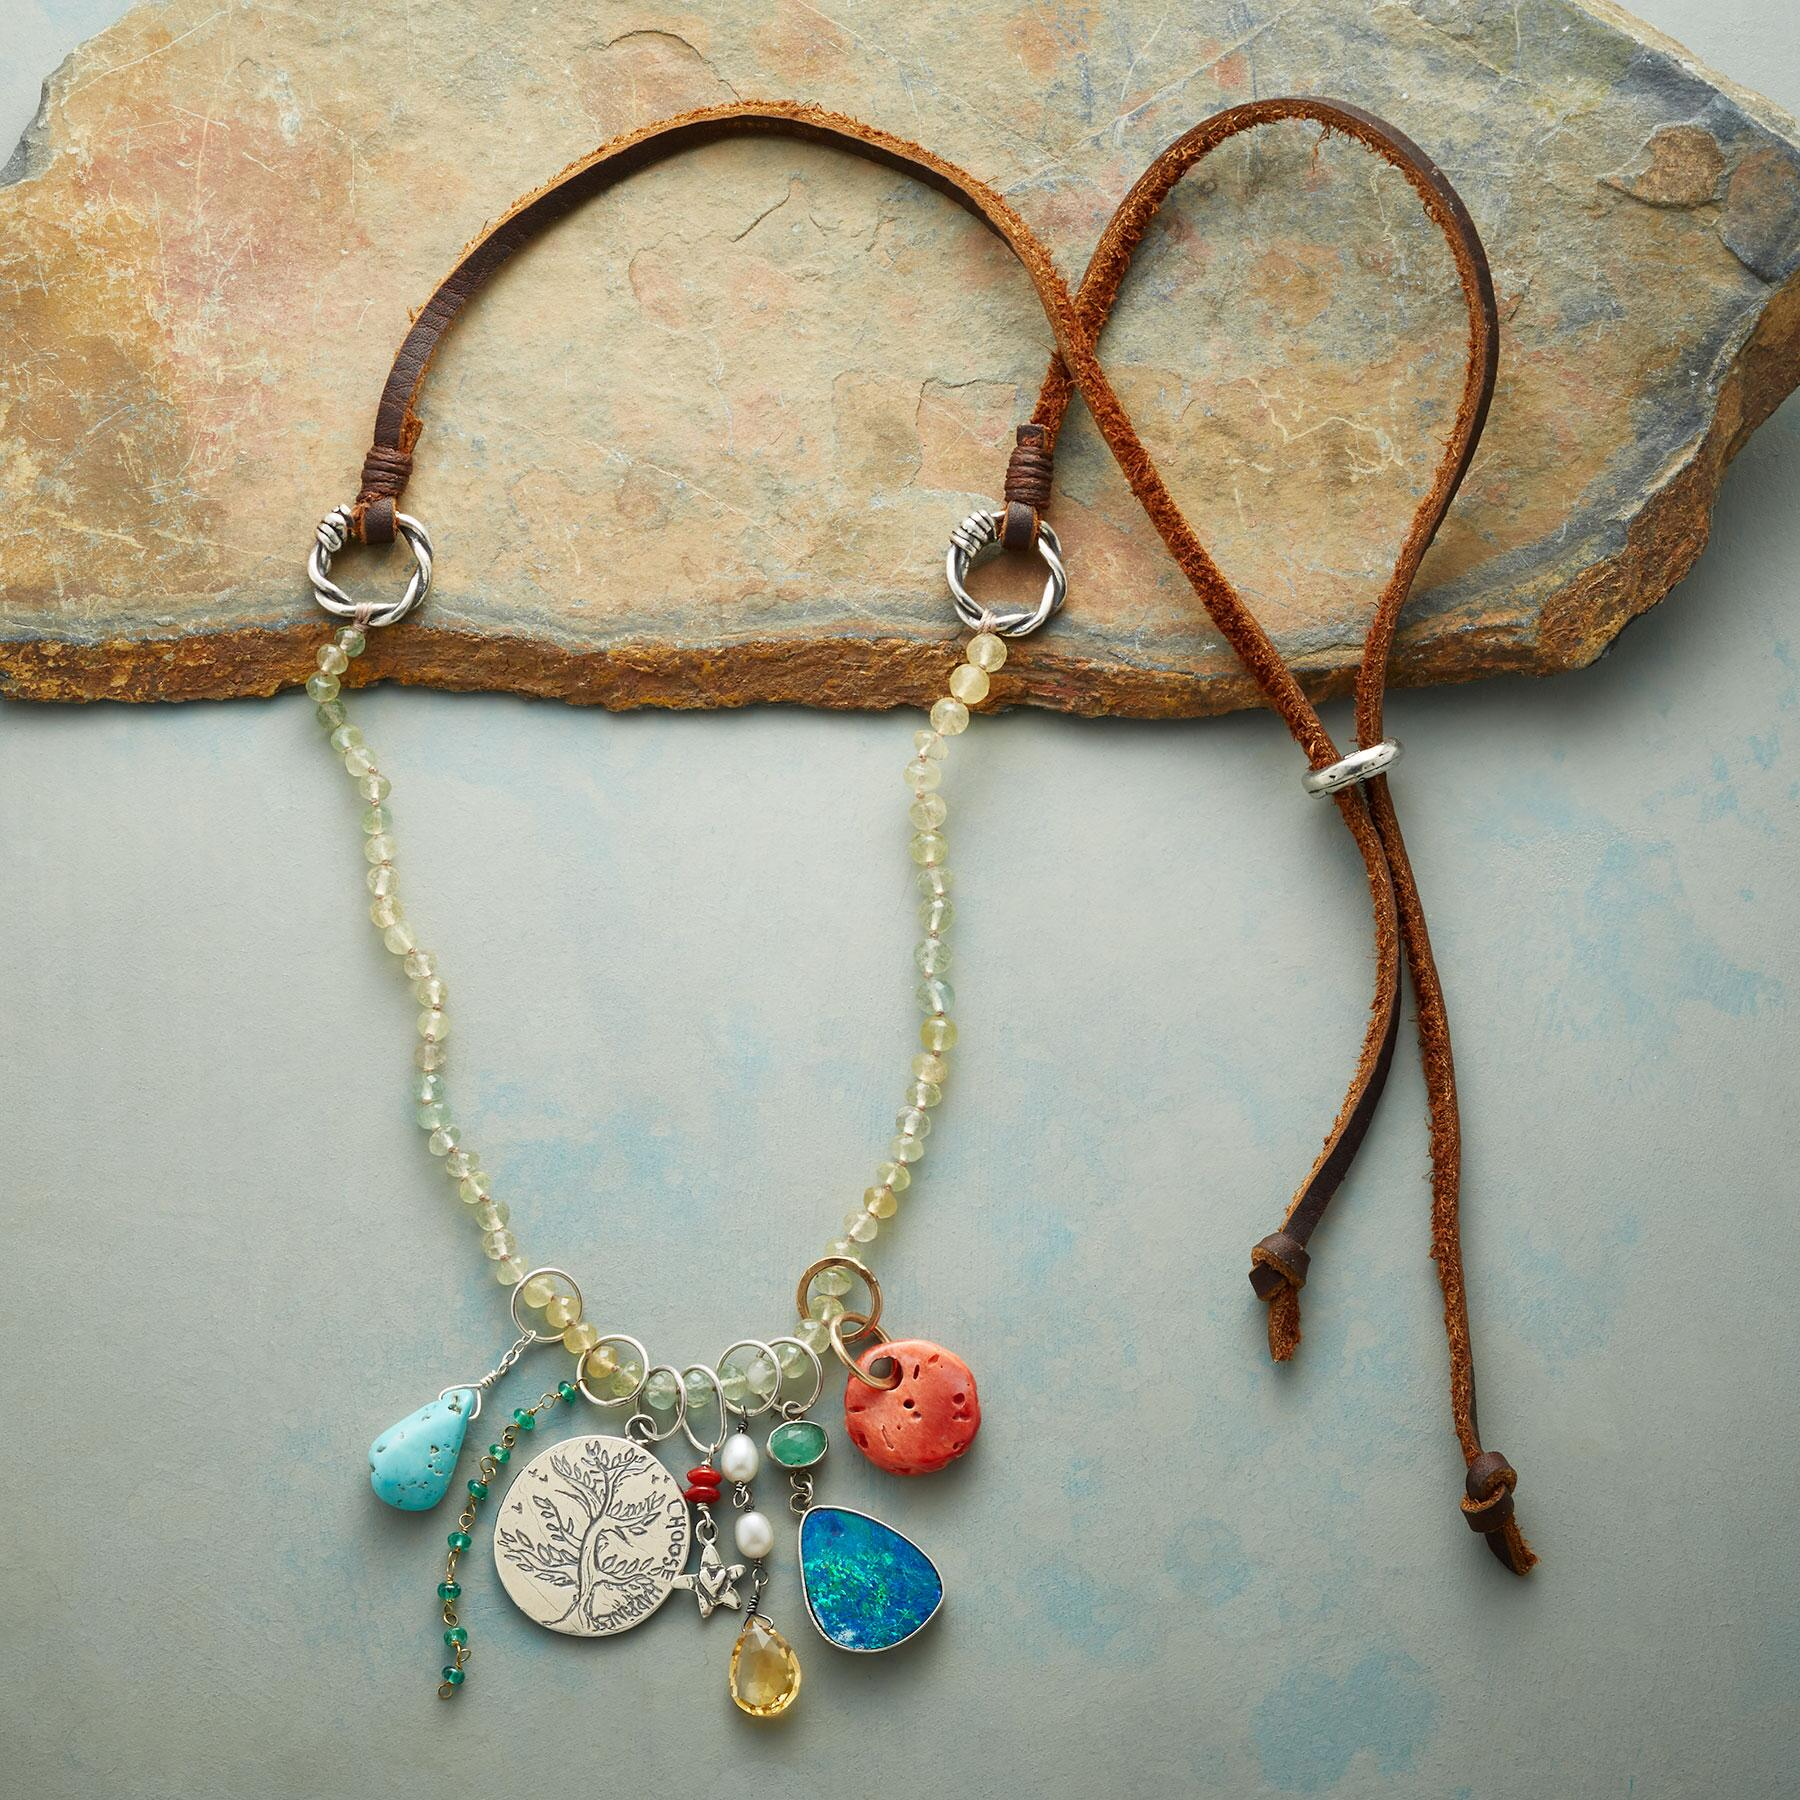 NATURES BOUNTY NECKLACE: View 2